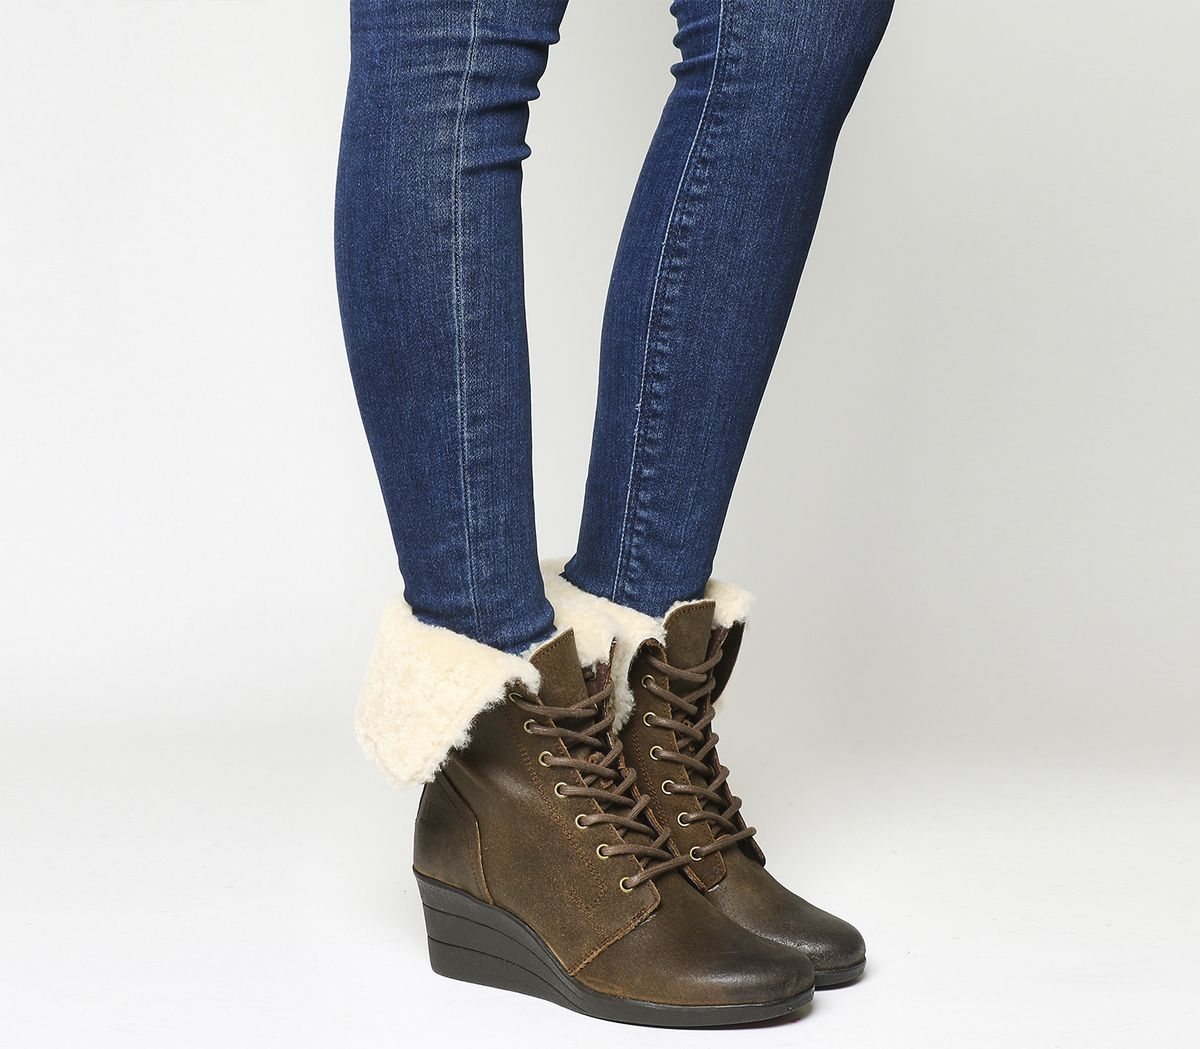 d0f8ae9122e Zea Shearling Wedge Lace Up boots